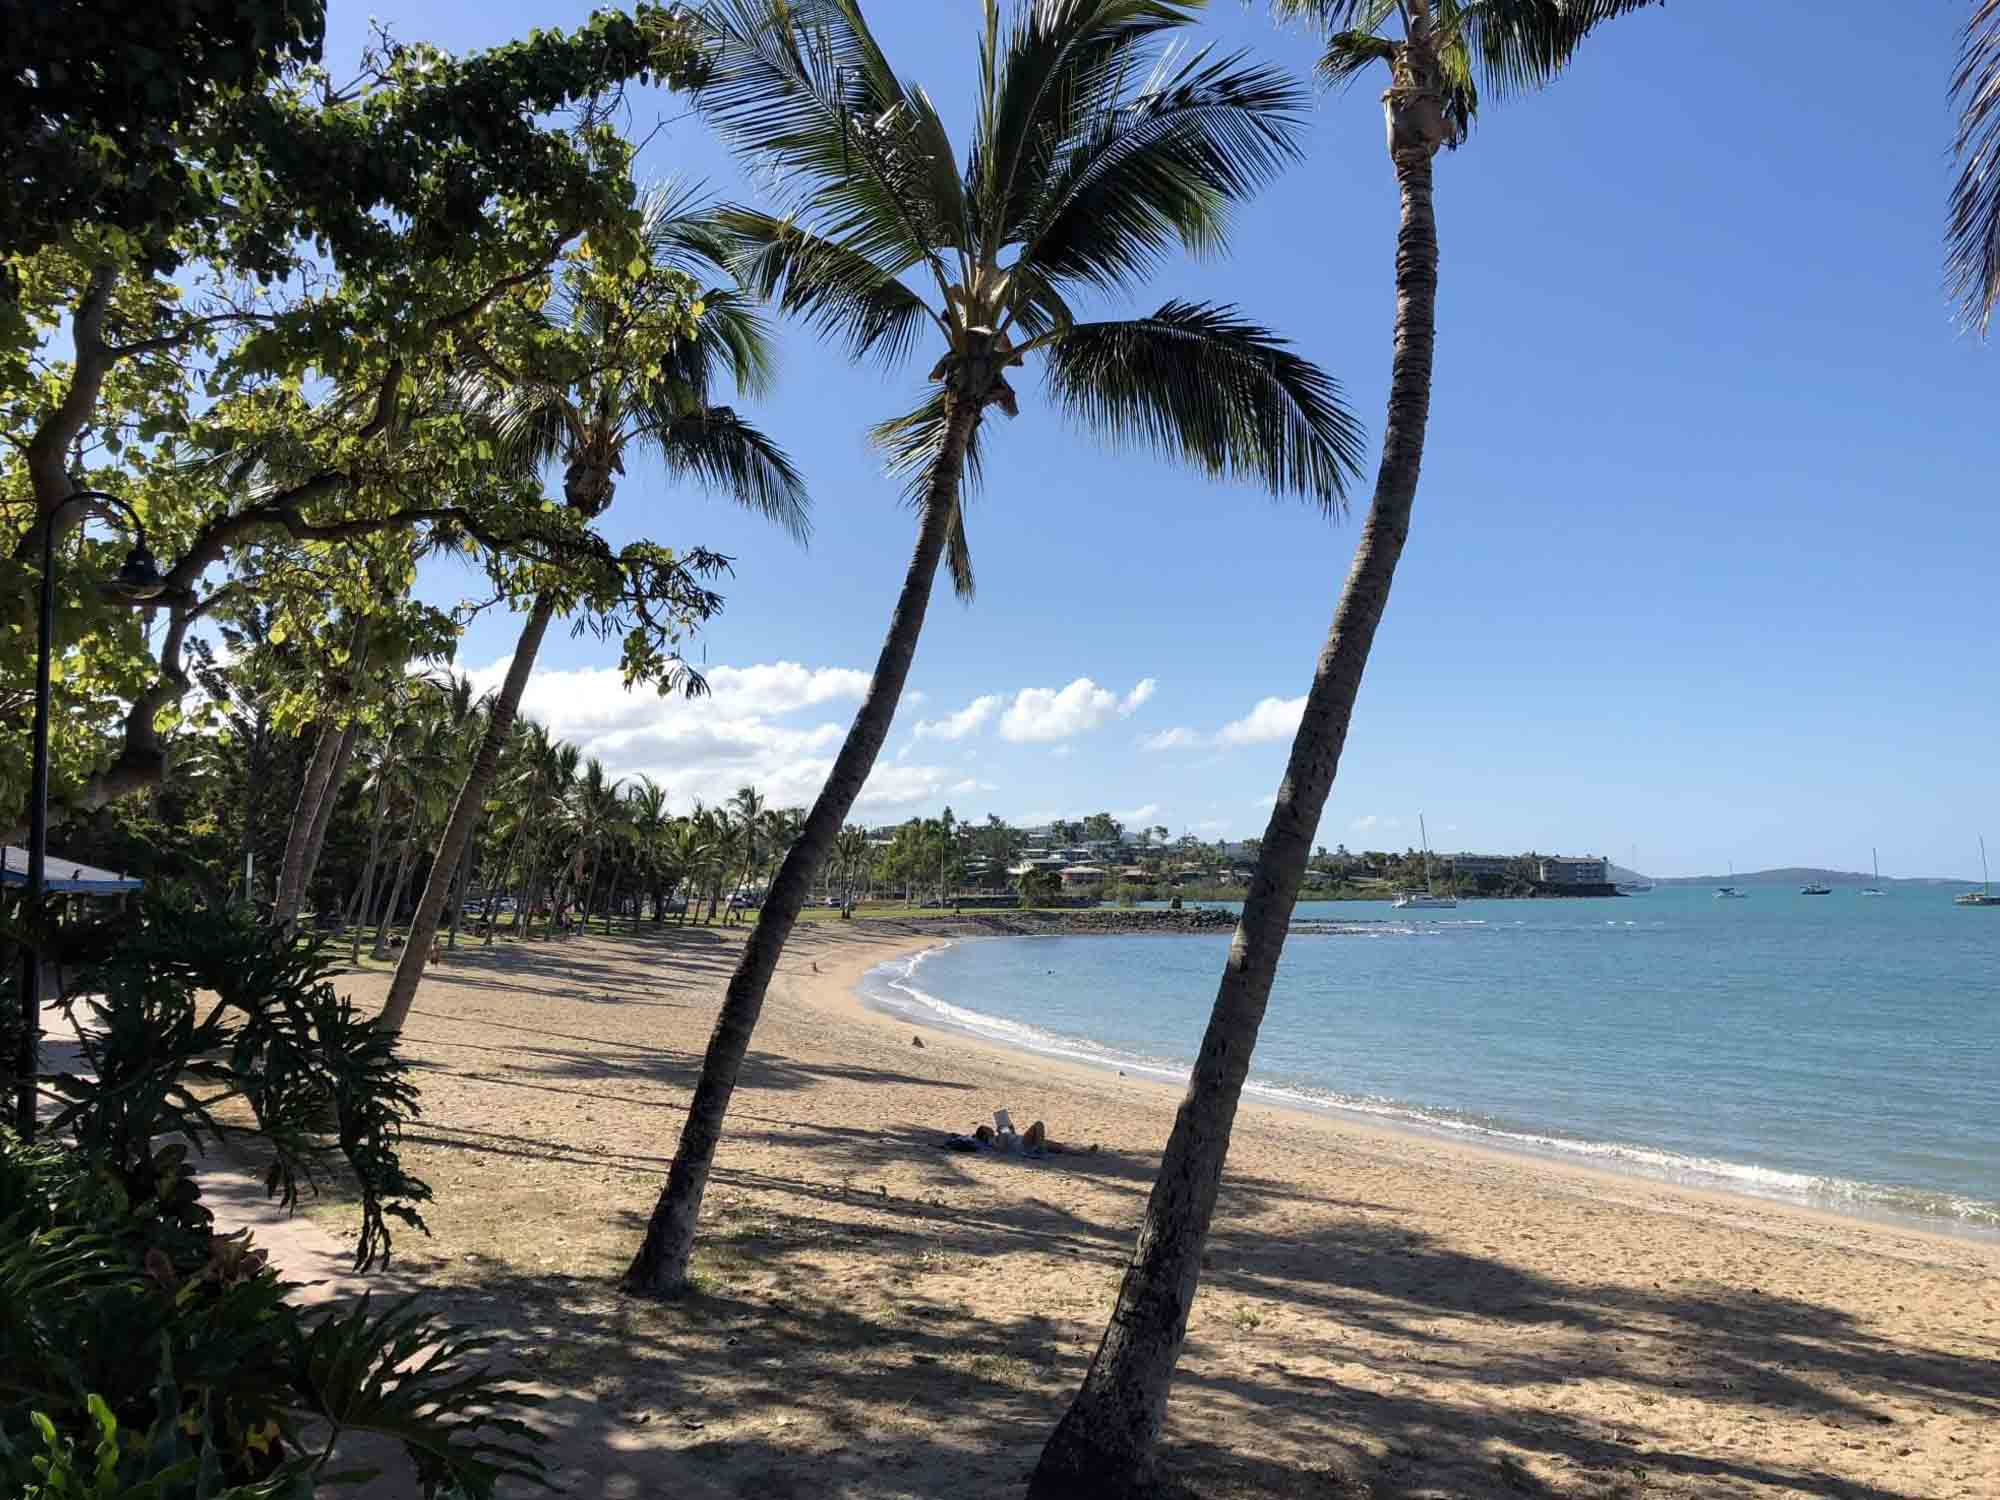 Top things to do in Airlie Beach - Roteiro em Airlie Beach